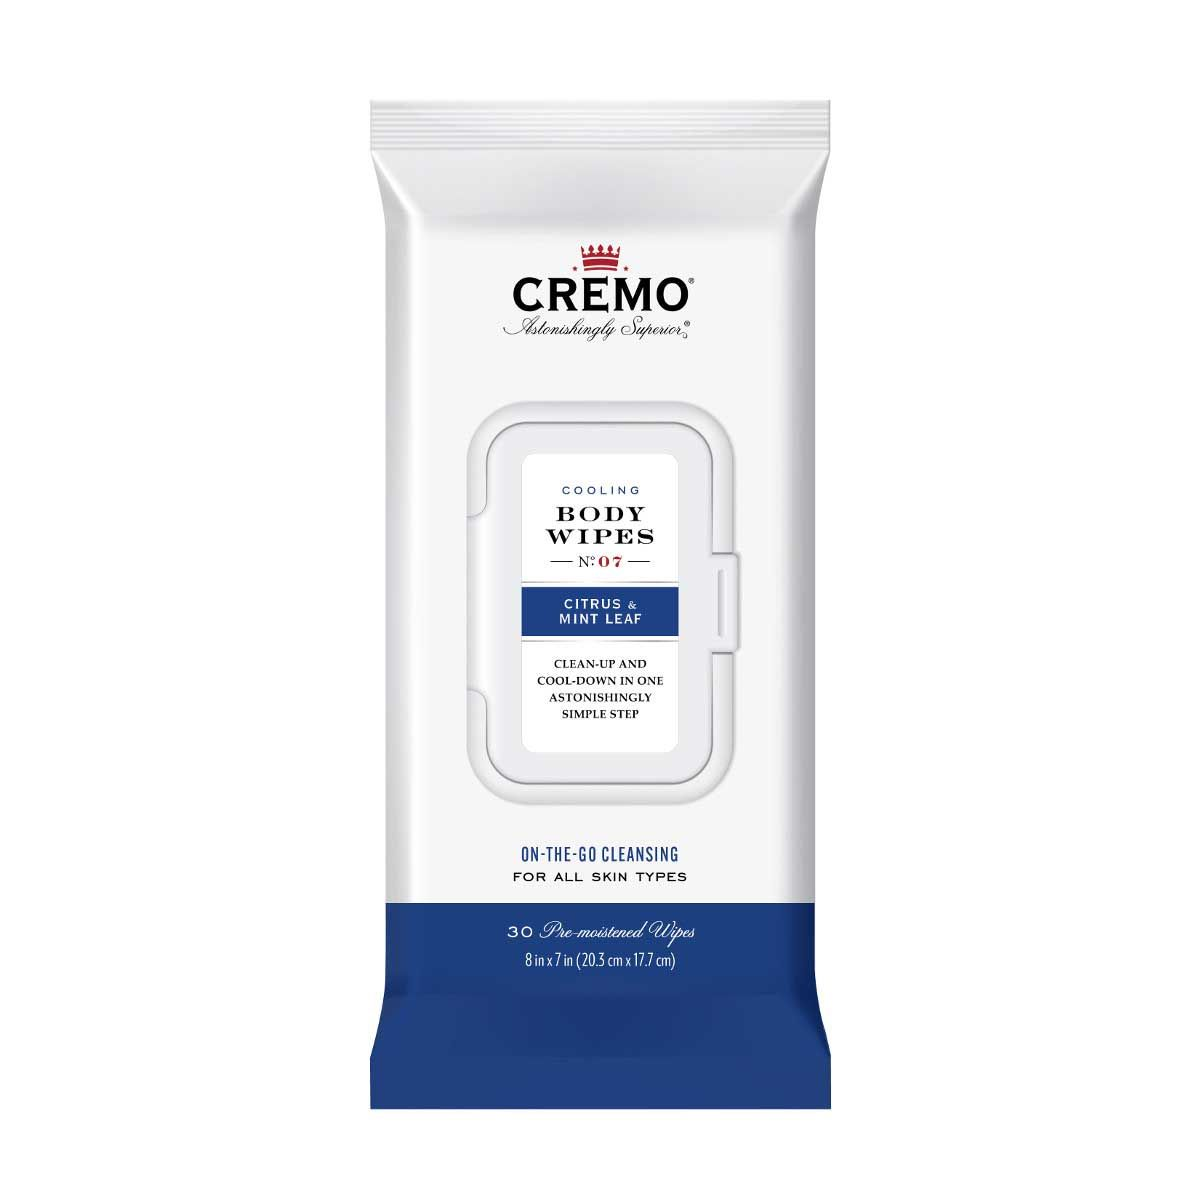 CREMO BODY WIPES-Citrus & Mint Leaf